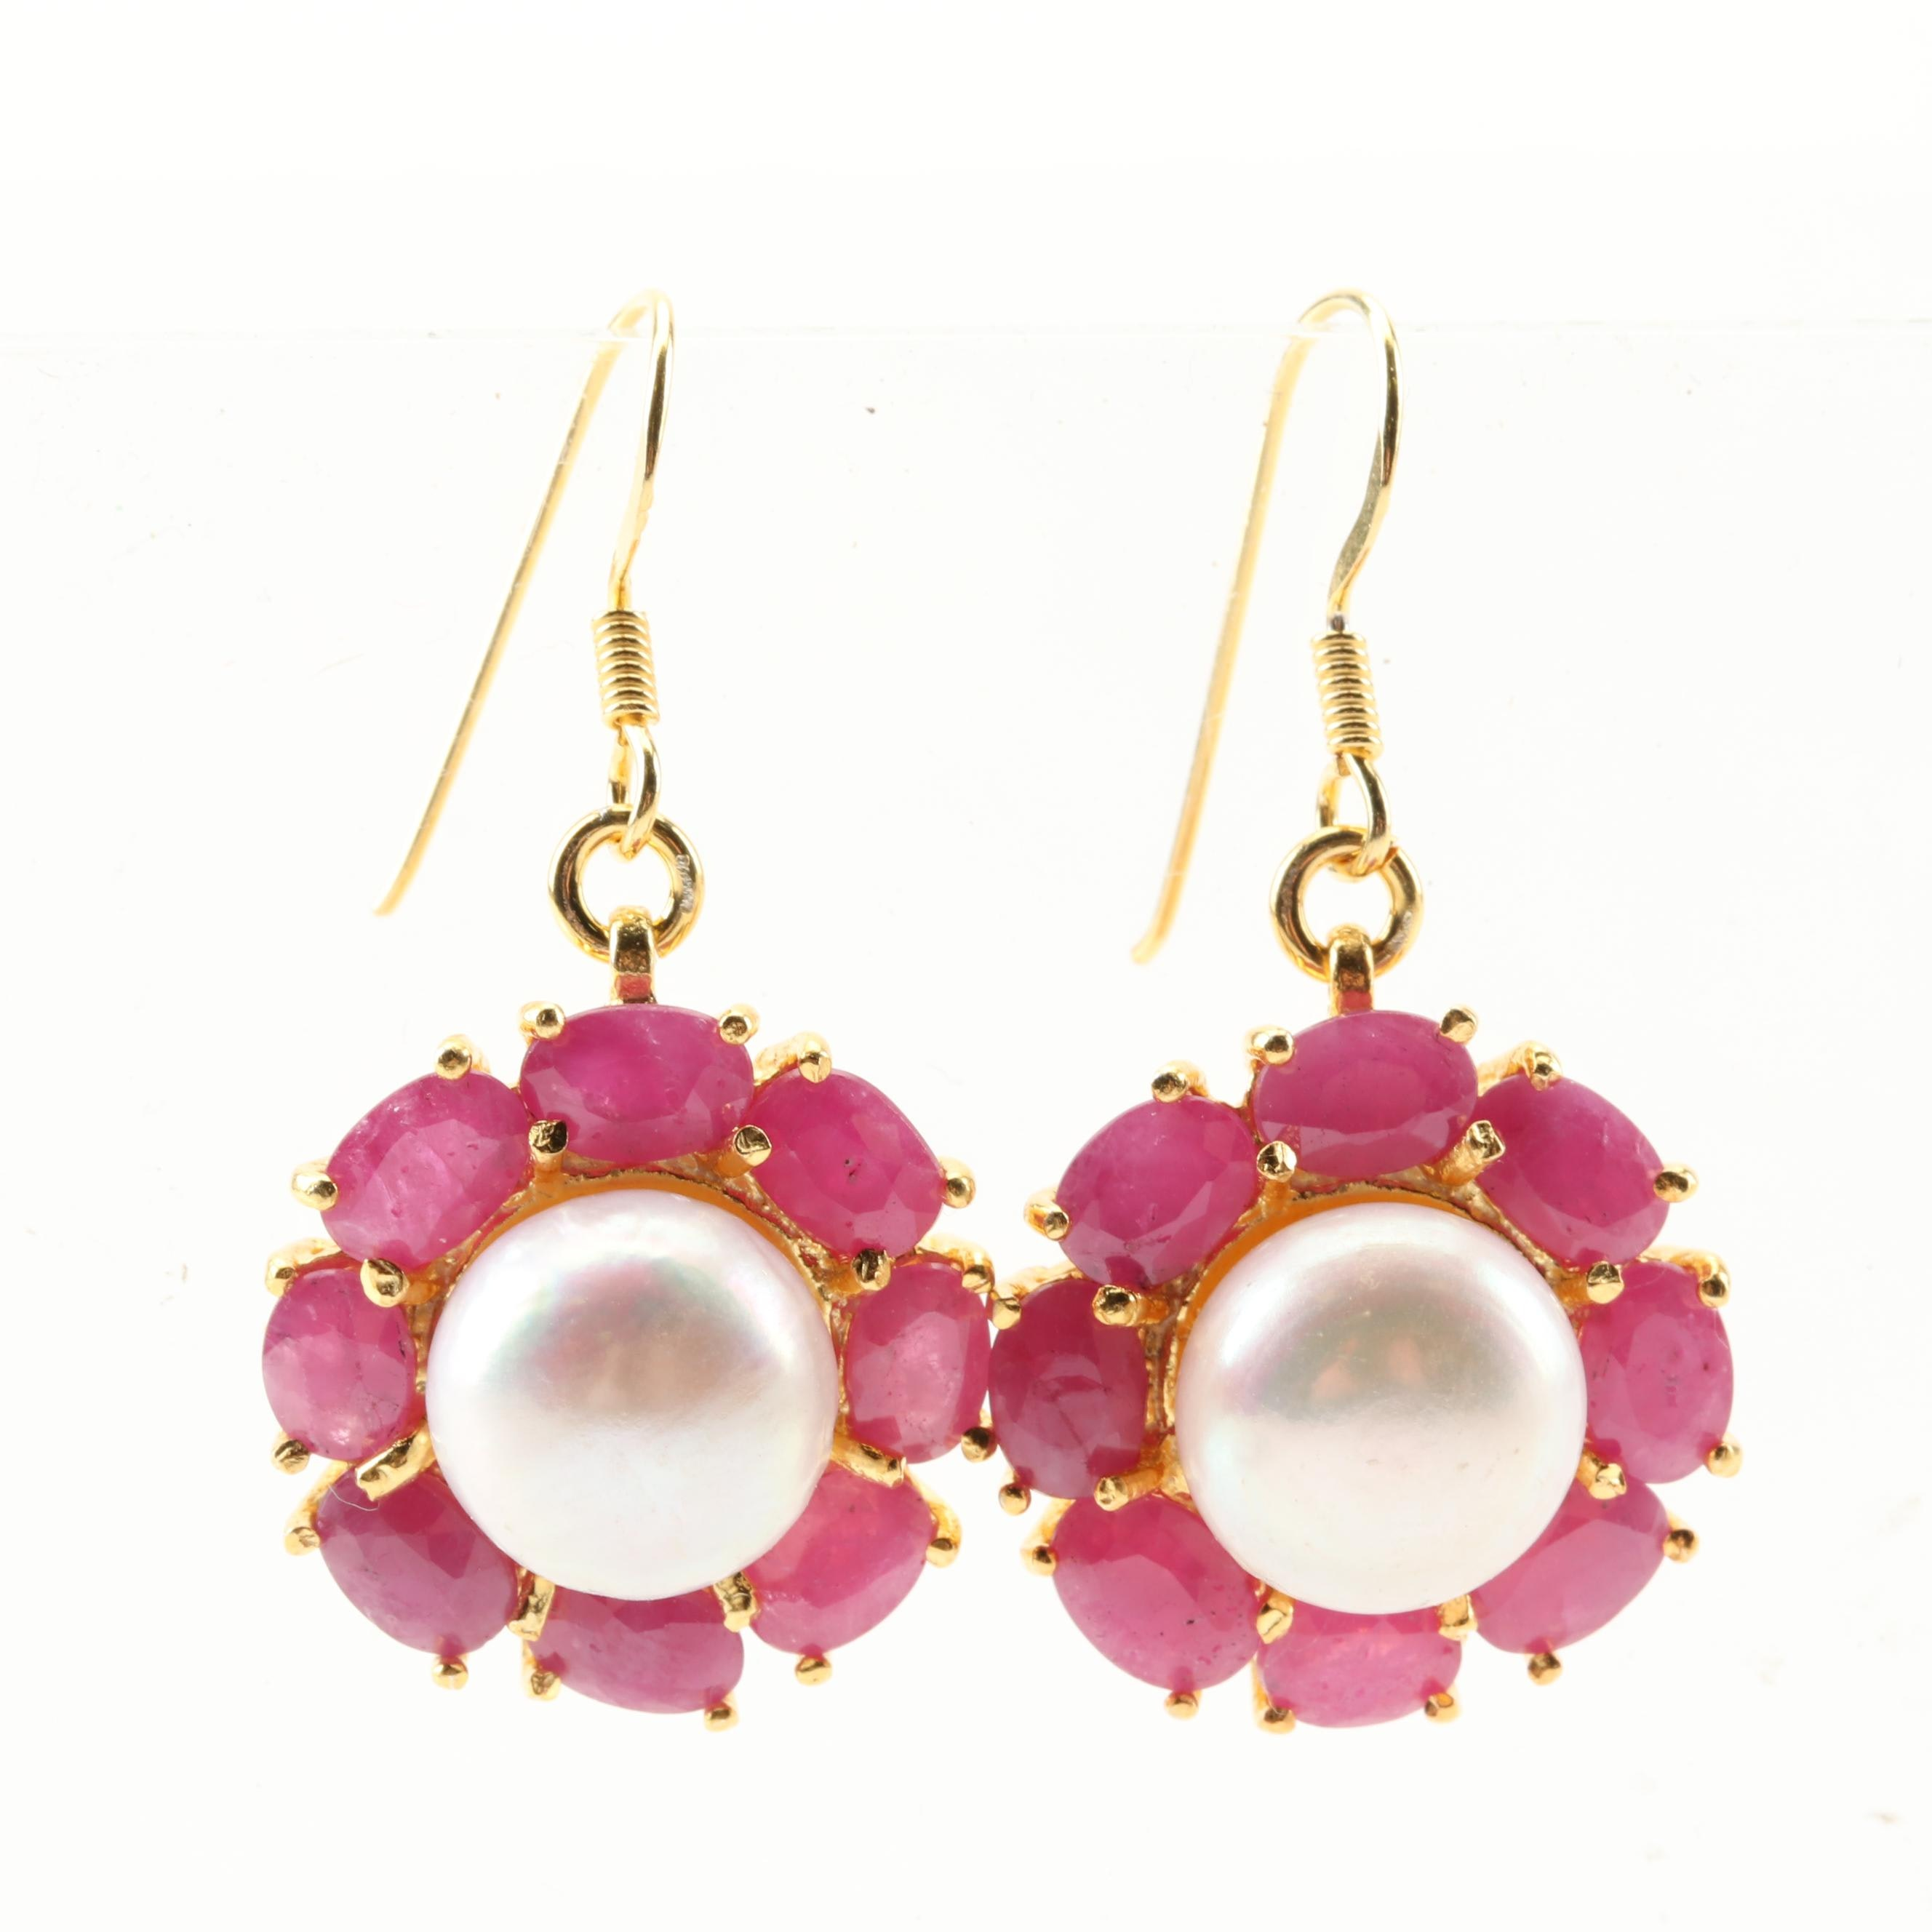 Gold Wash Sterling Silver Freshwater Pearl and Ruby Earrings